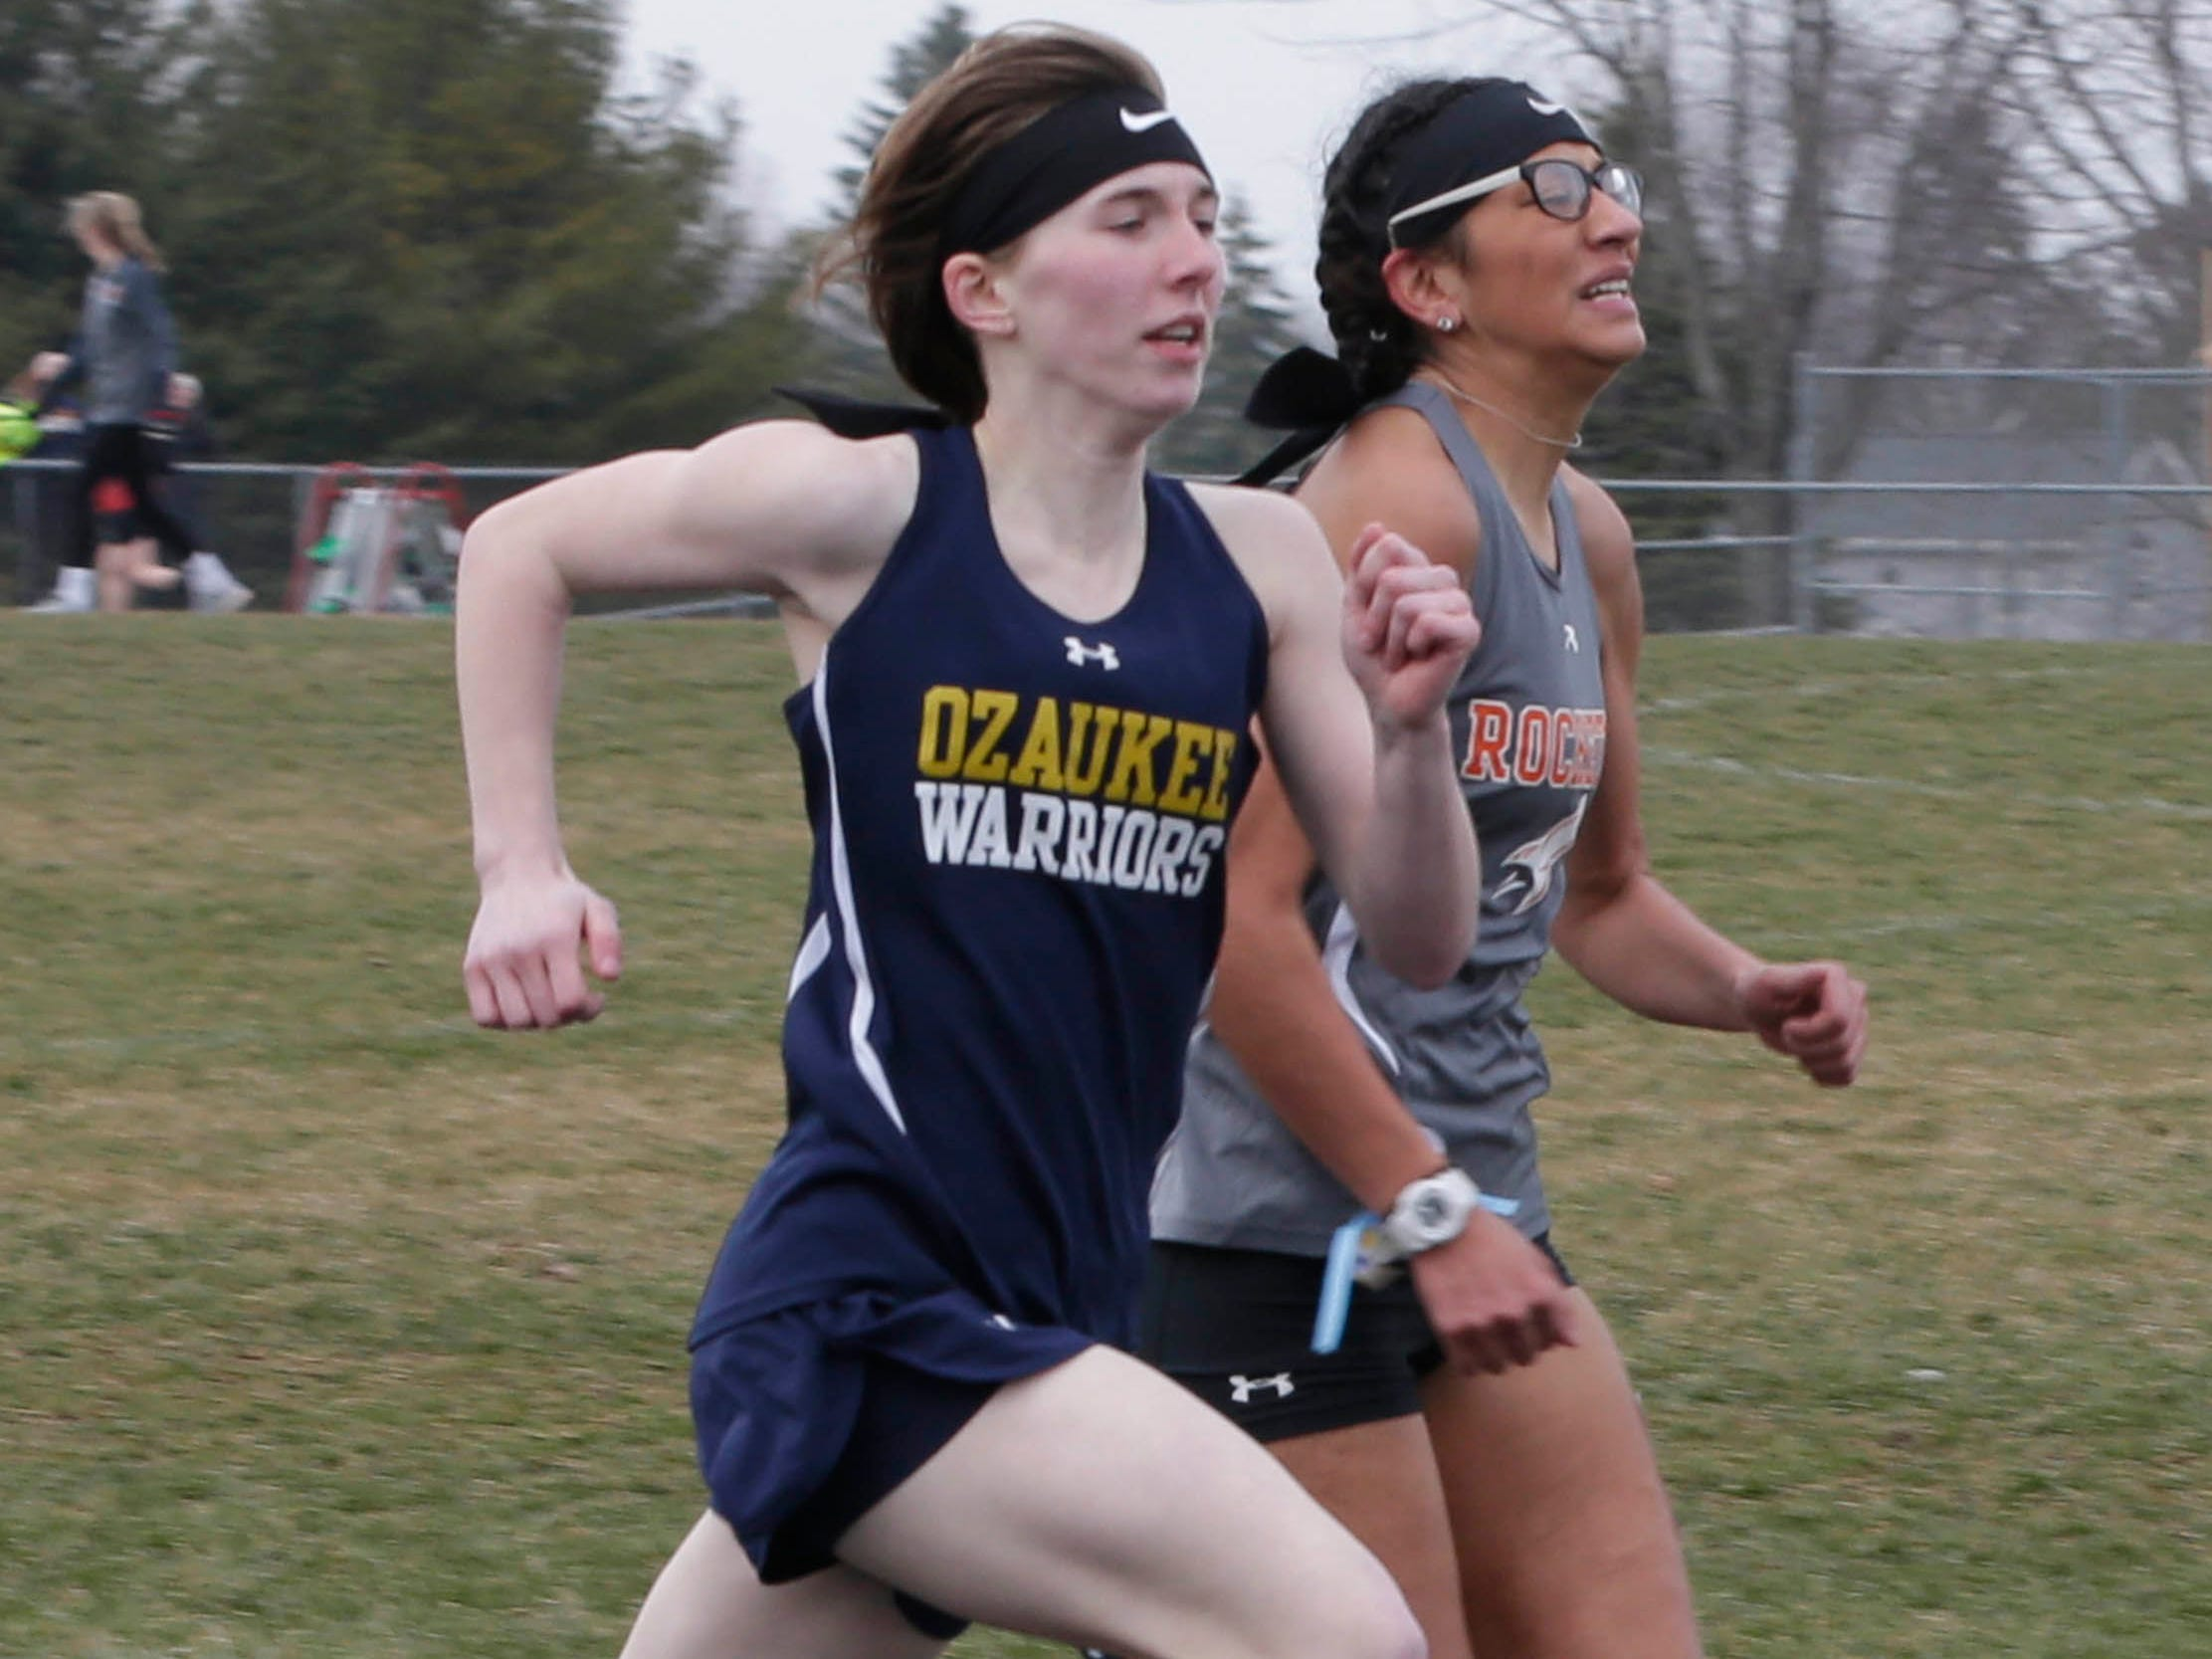 Ozaukee's Ashlee Mueller, left, competes in the final stretch of the 800 meter run with Cedar Grove-Belgium's Karen Ibarra, Tuesday, April 16, 2019, in Cedar Grove, Wis.